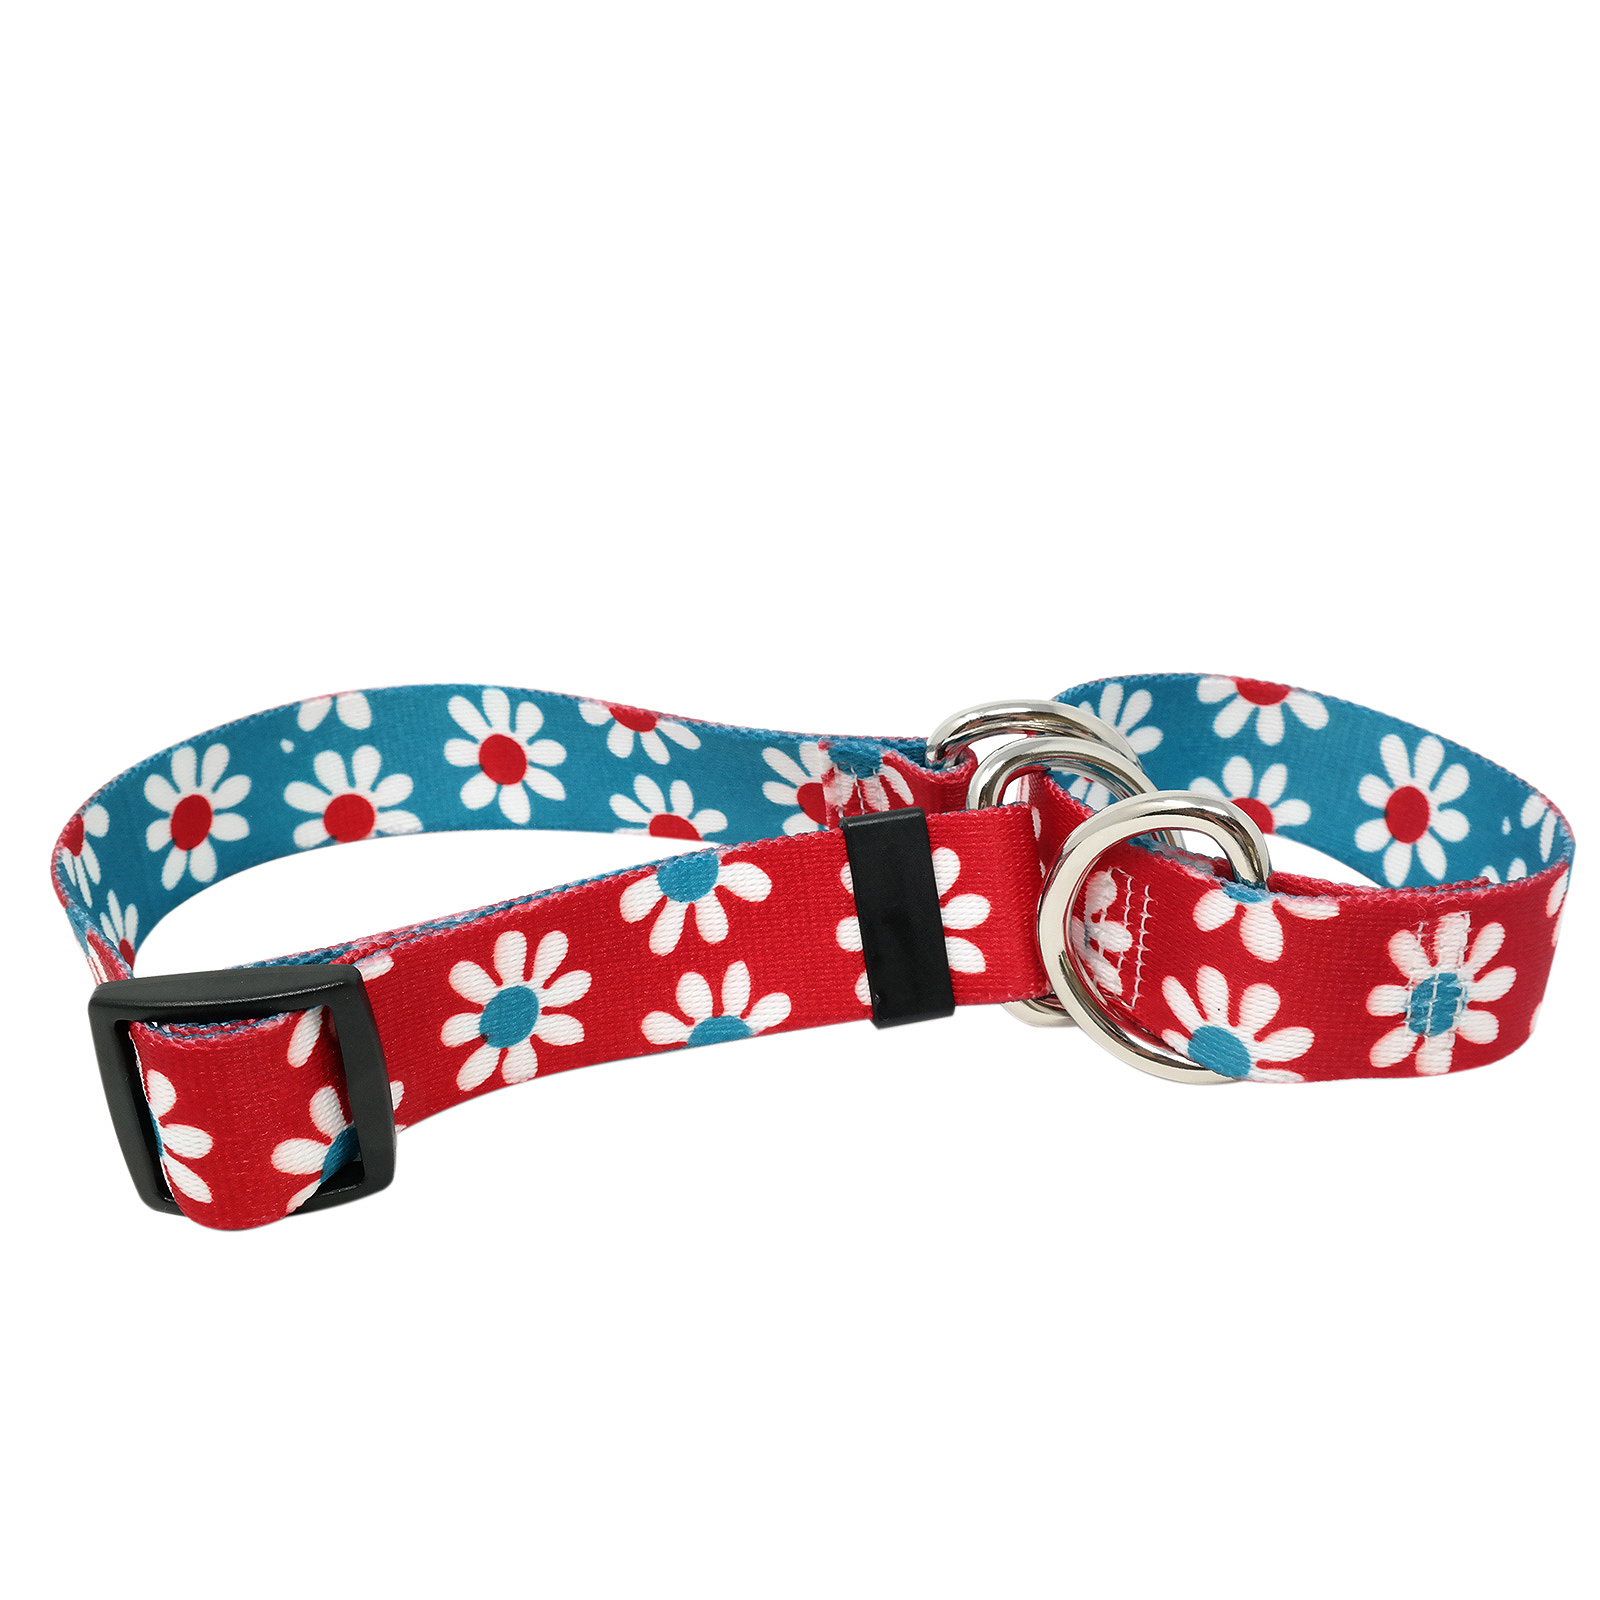 Red & Teal Daisy Martingale Collar